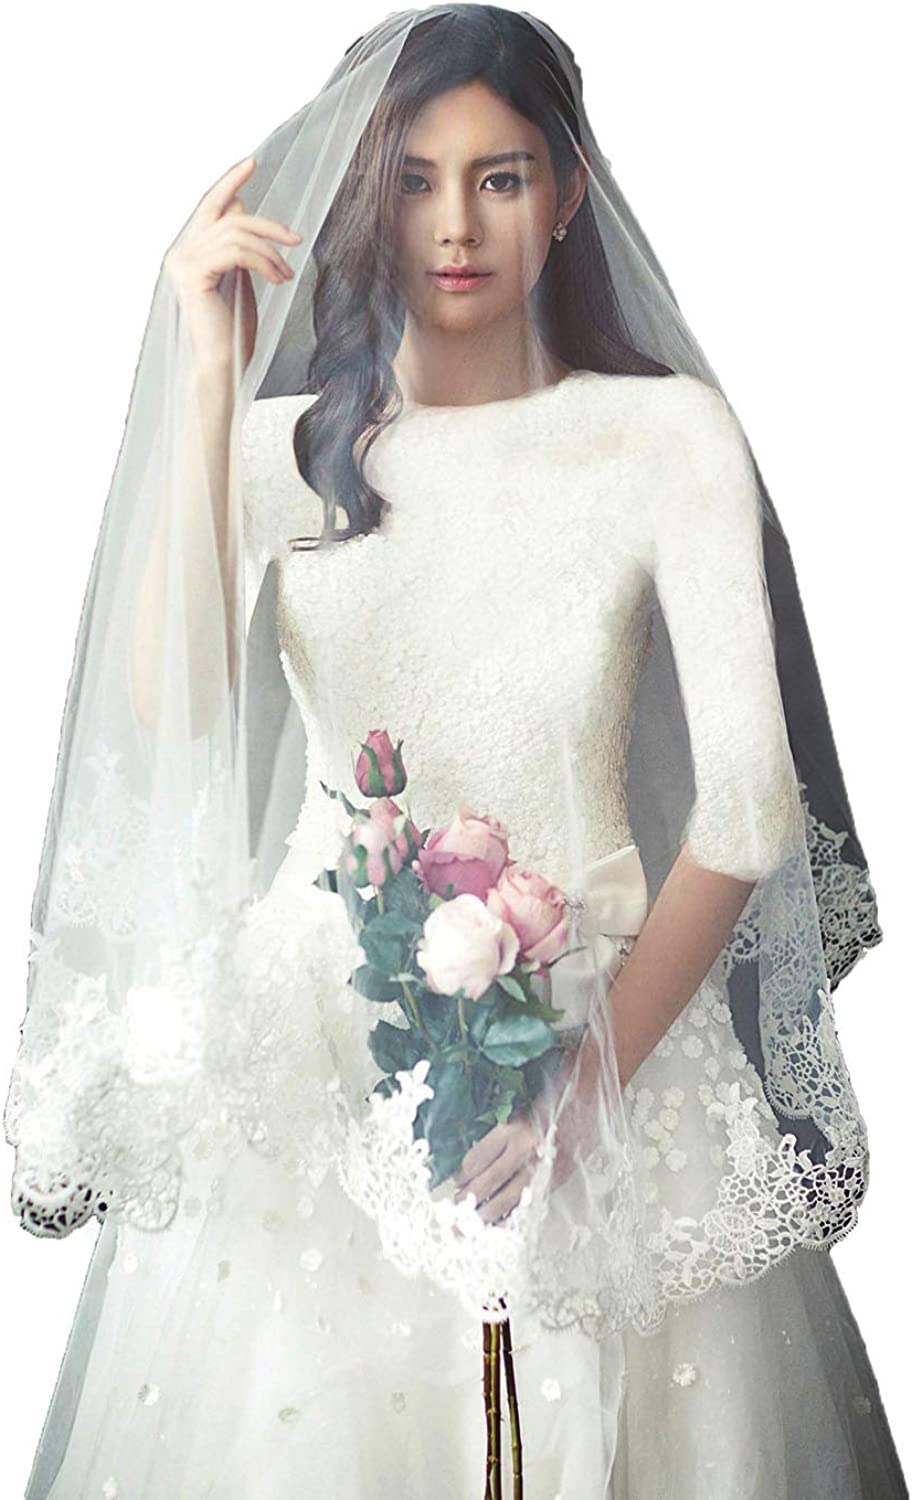 Fenghuavip bluesher Wedding Veils Fingertip Length Lace Edge Veils for Brides with Comb